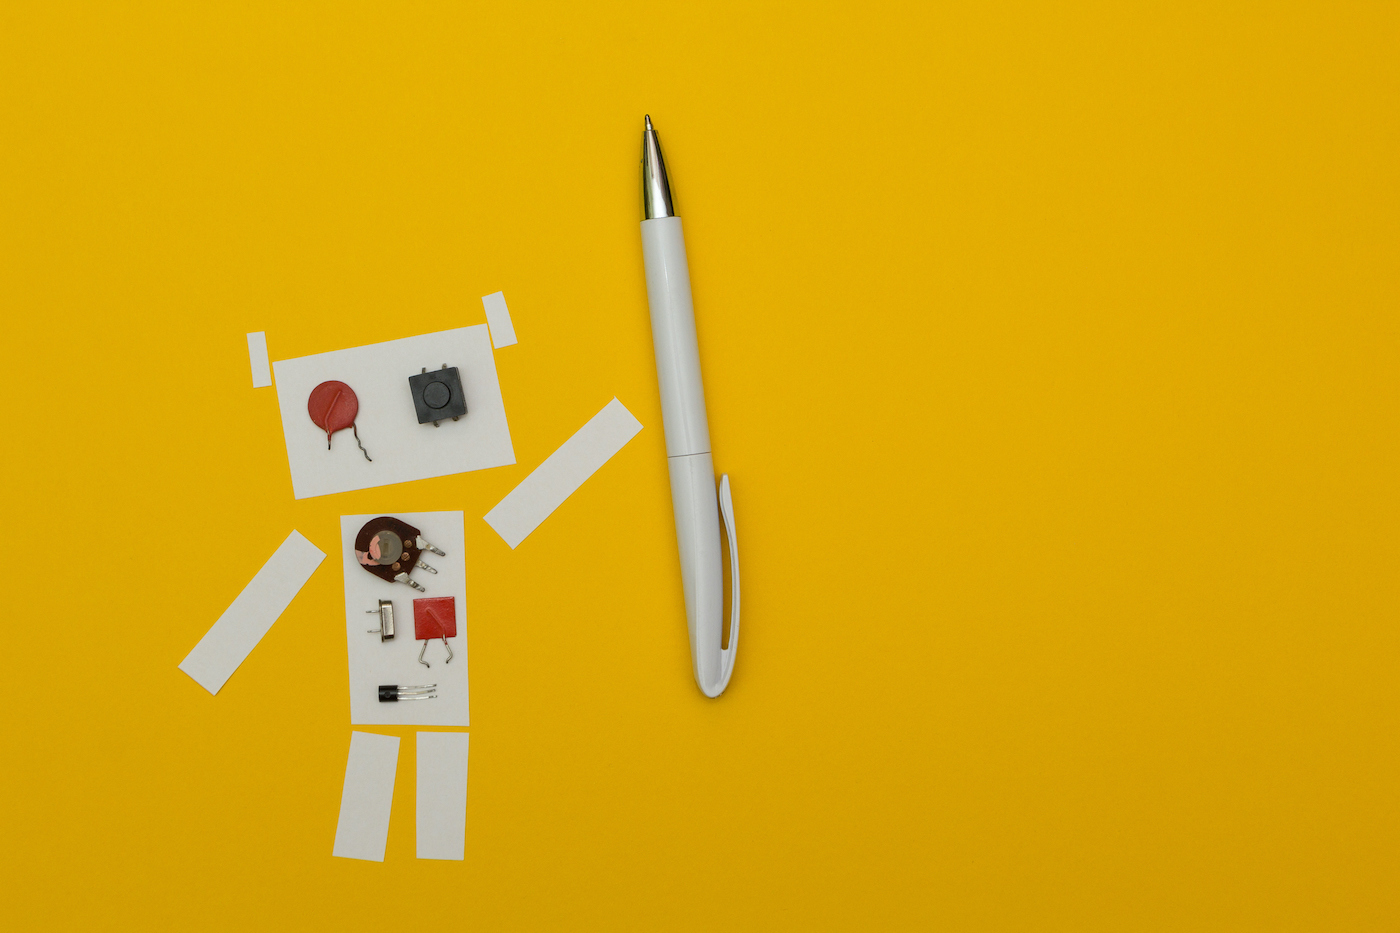 Paper robot holding pen, space for text